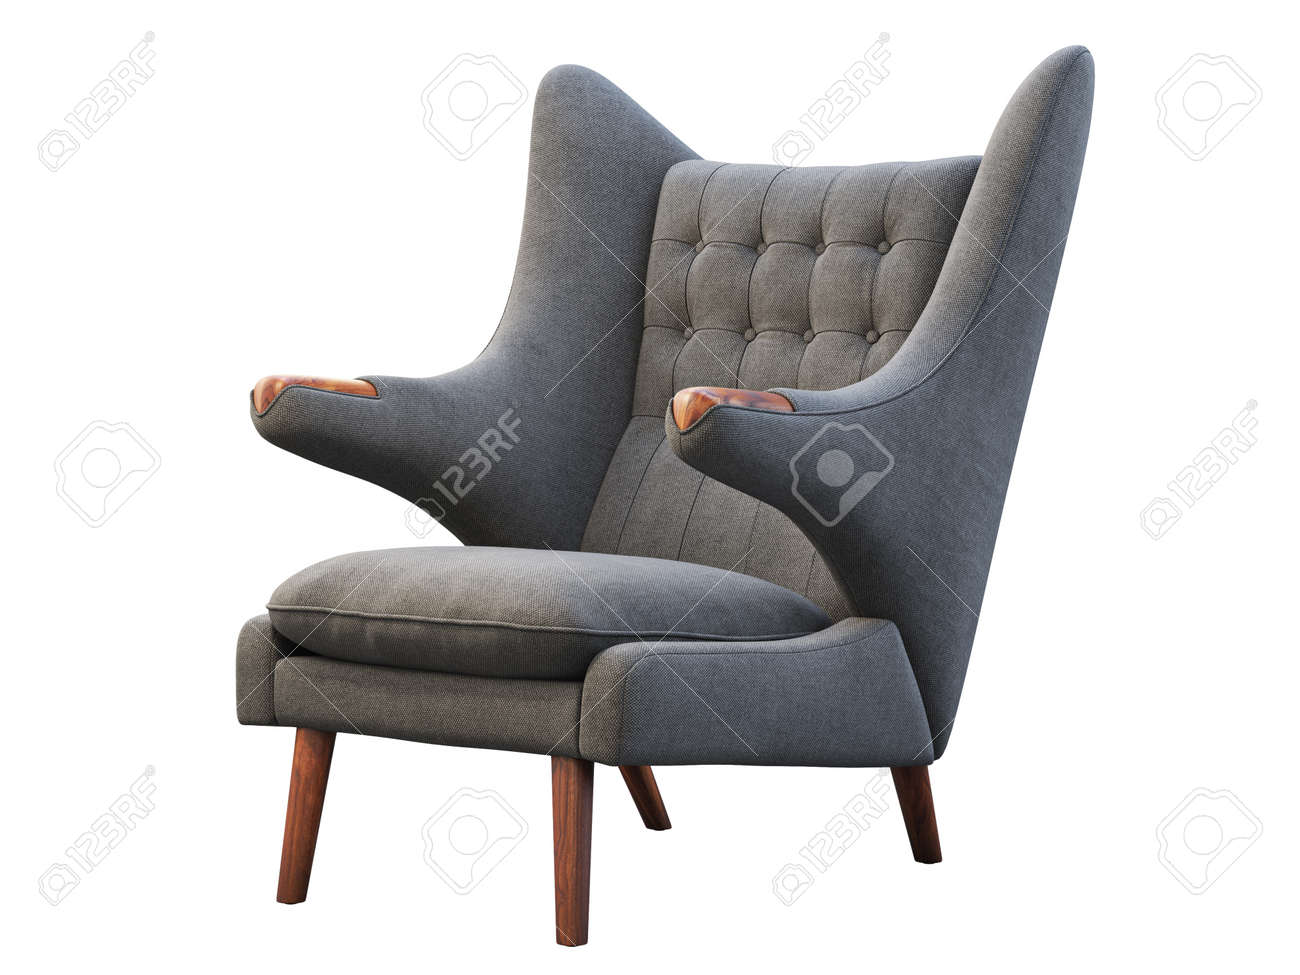 photo mid century gray fabric wing chair fabric upholstery armchair with wooden legs on white background m